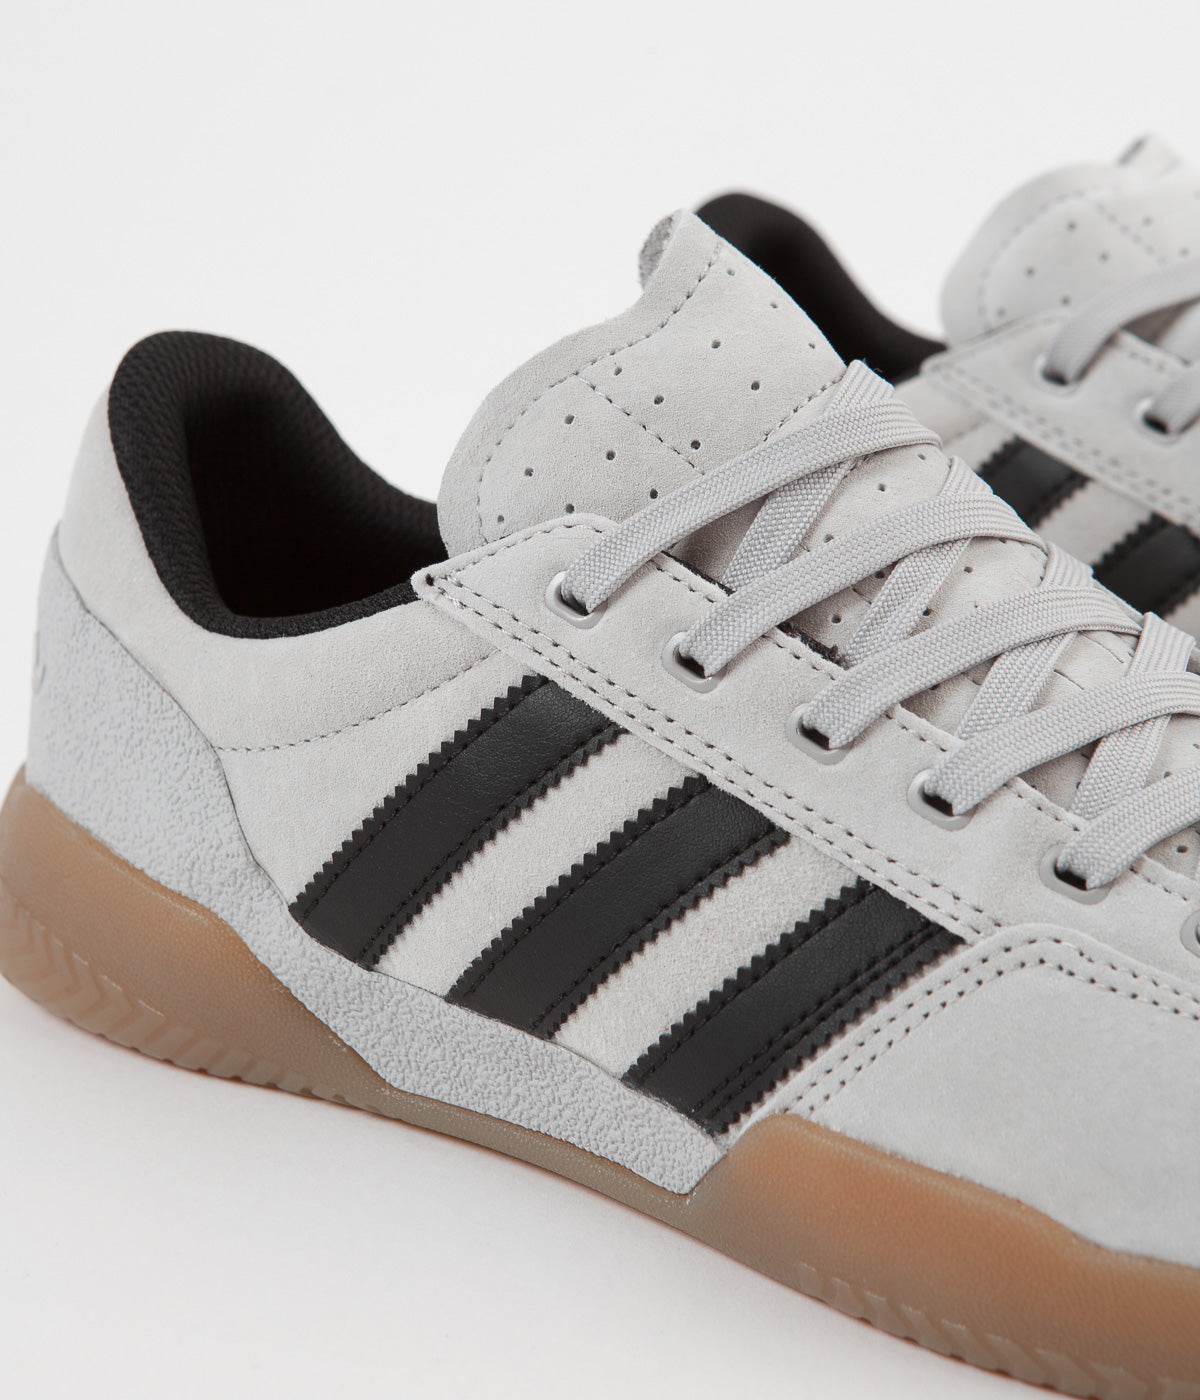 Adidas City Cup Shoes Grey Two Core Black Gum4